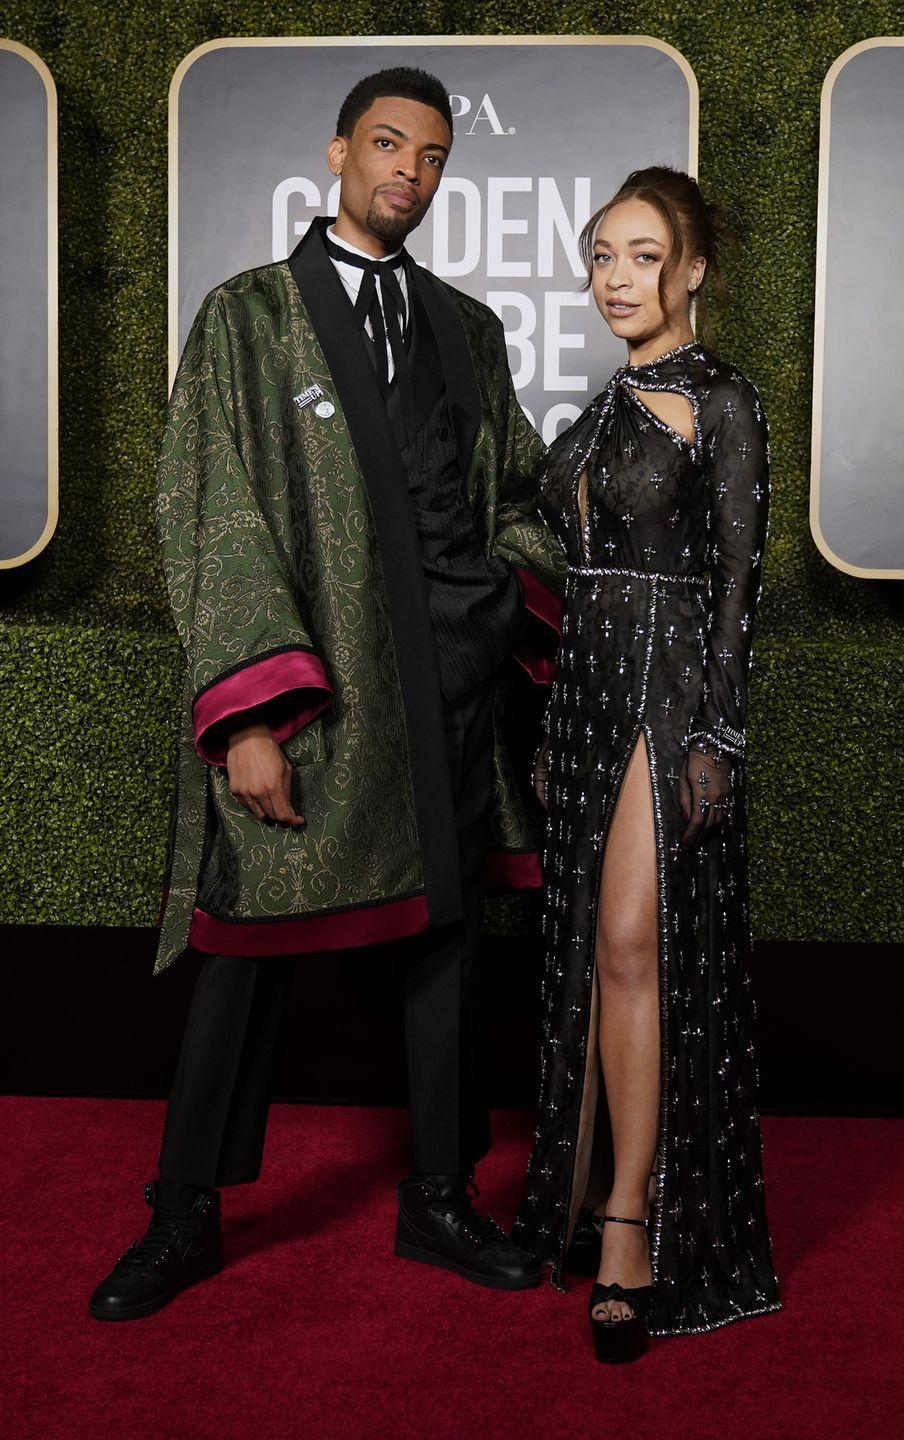 <p>The Golden Globe ambassadors and children of director Spike Lee collaborated with Gucci on their stylishly unique looks, combining their own sense of expression with high fashion and luxuriousness. They looked like the royalty they are. </p>